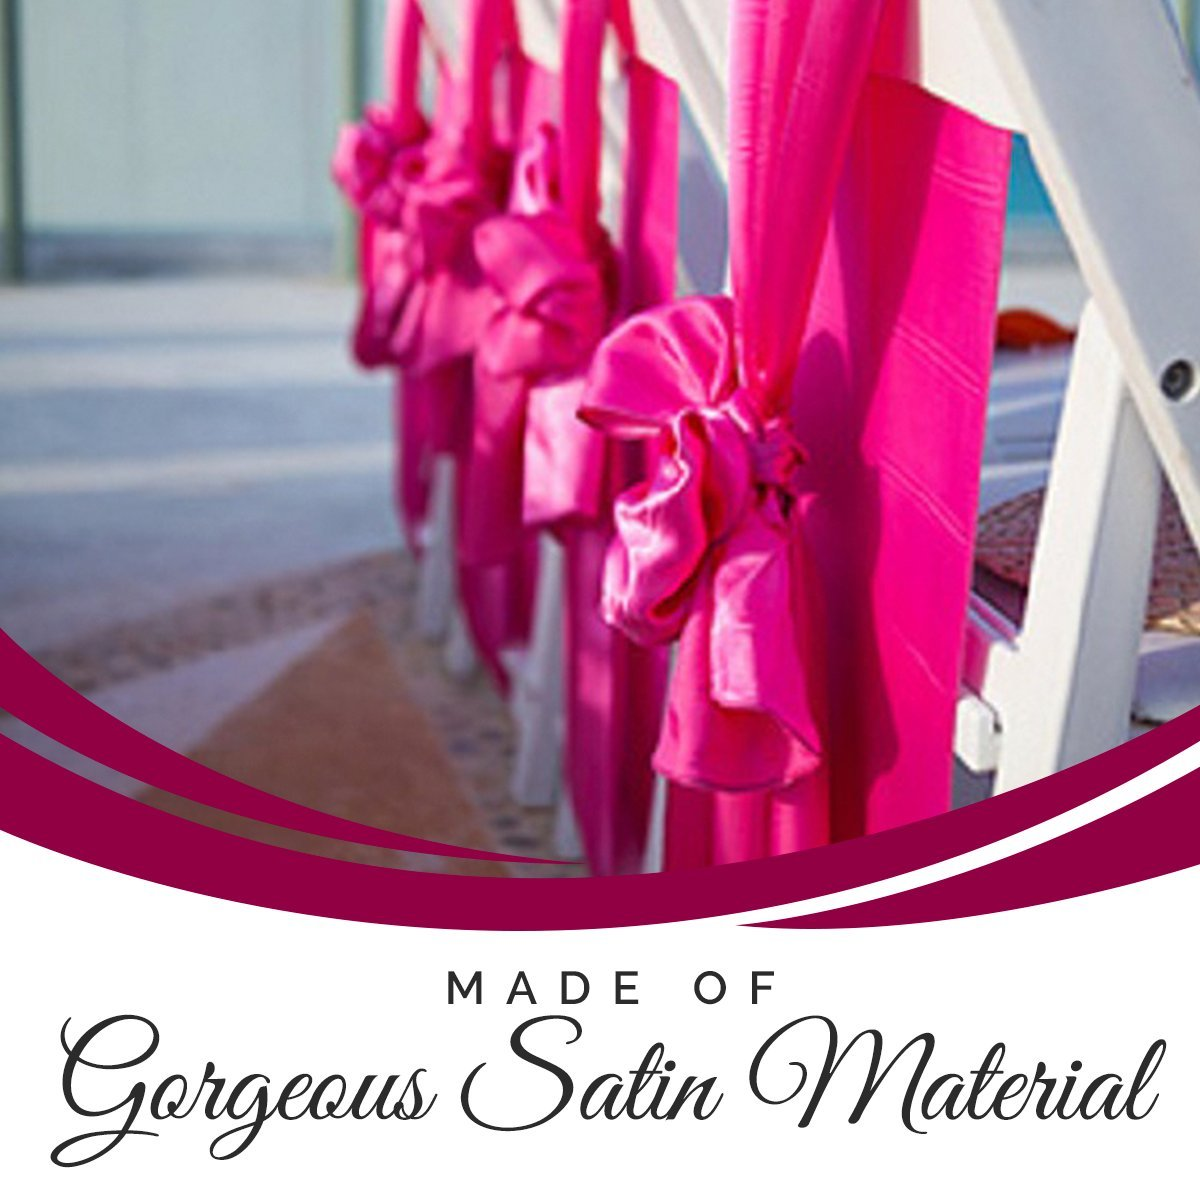 SPRINGROSE 50 Fuschia-Hot Pink Wedding Satin Chair Sashes. These Are a Wonderful Decoration for Your Chairs. Be Sure and Add Them to Your List of Party Supplies. by SPRINGROSE